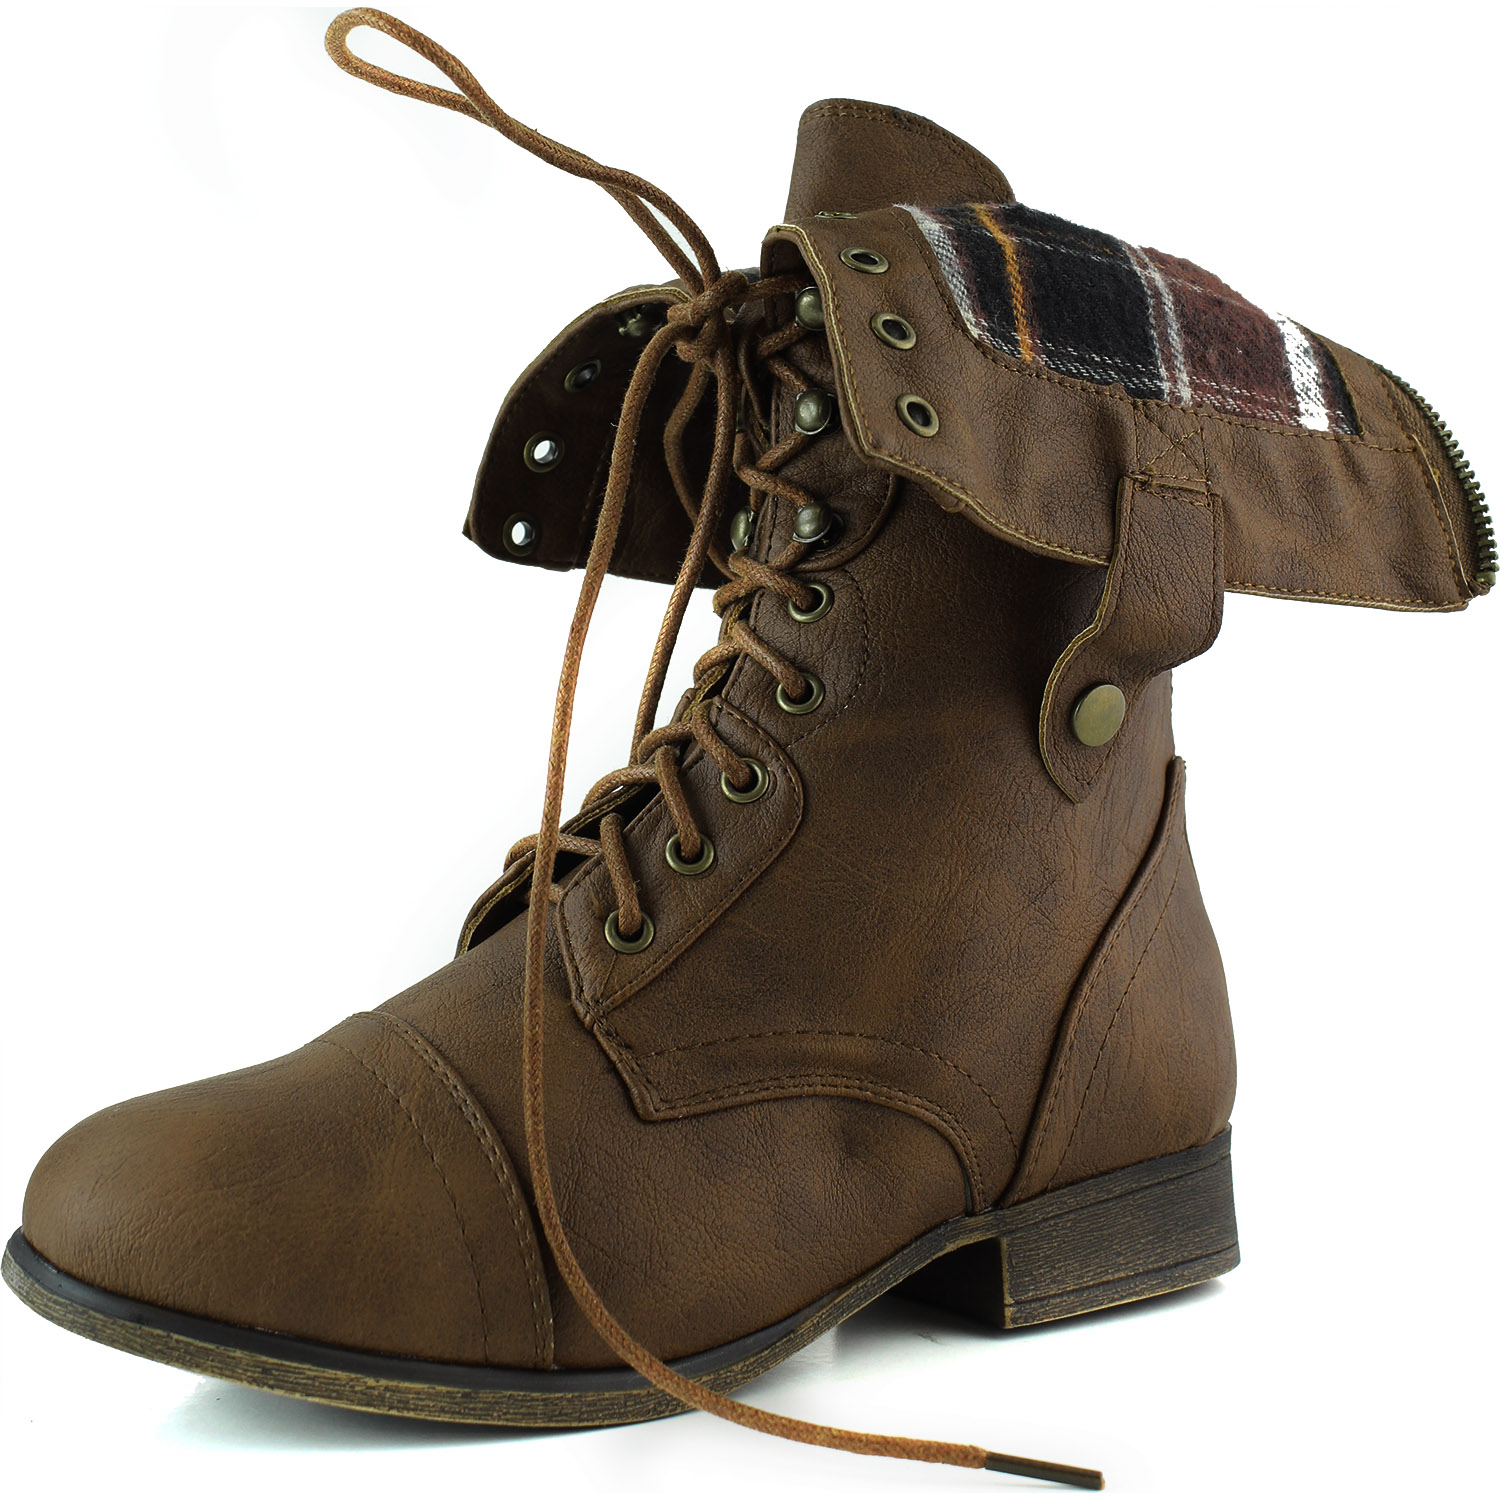 Top Moda Women's Military Up Foldable Ankle Mid Knee Combat Boots Tan at Sears.com